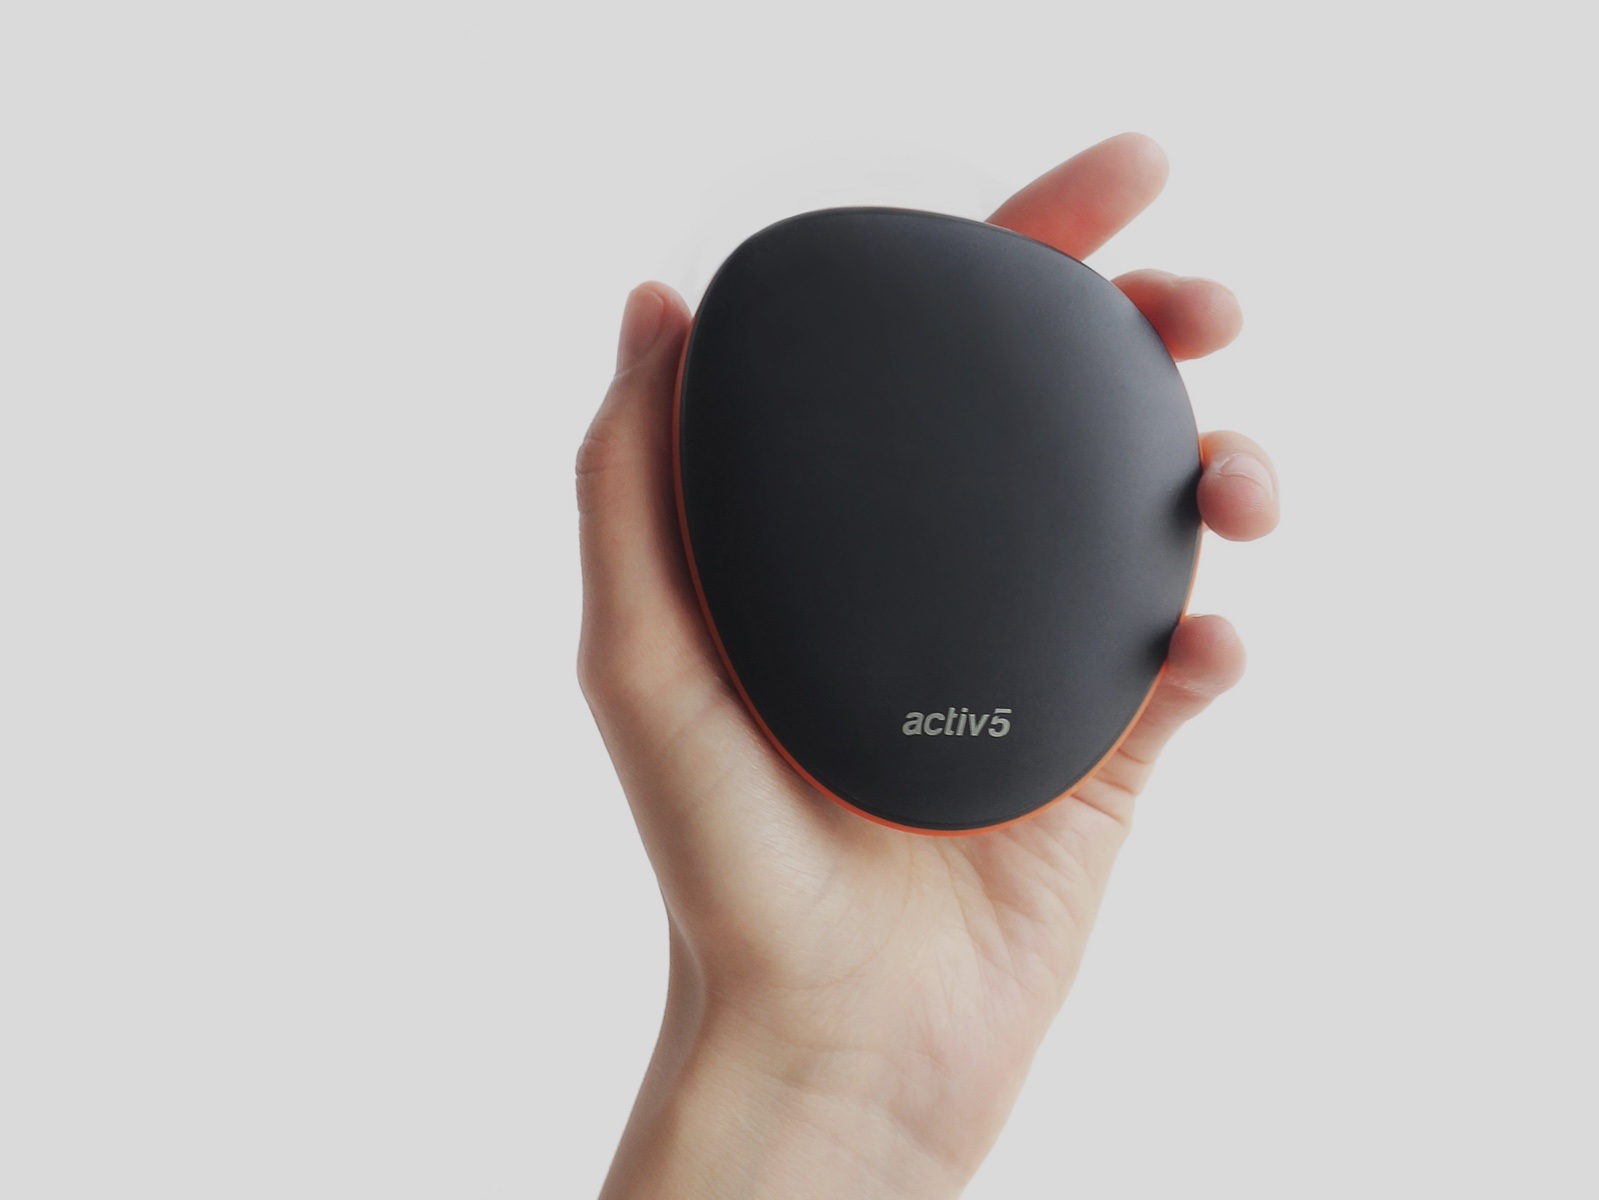 activ5-device-in-hand.jpg